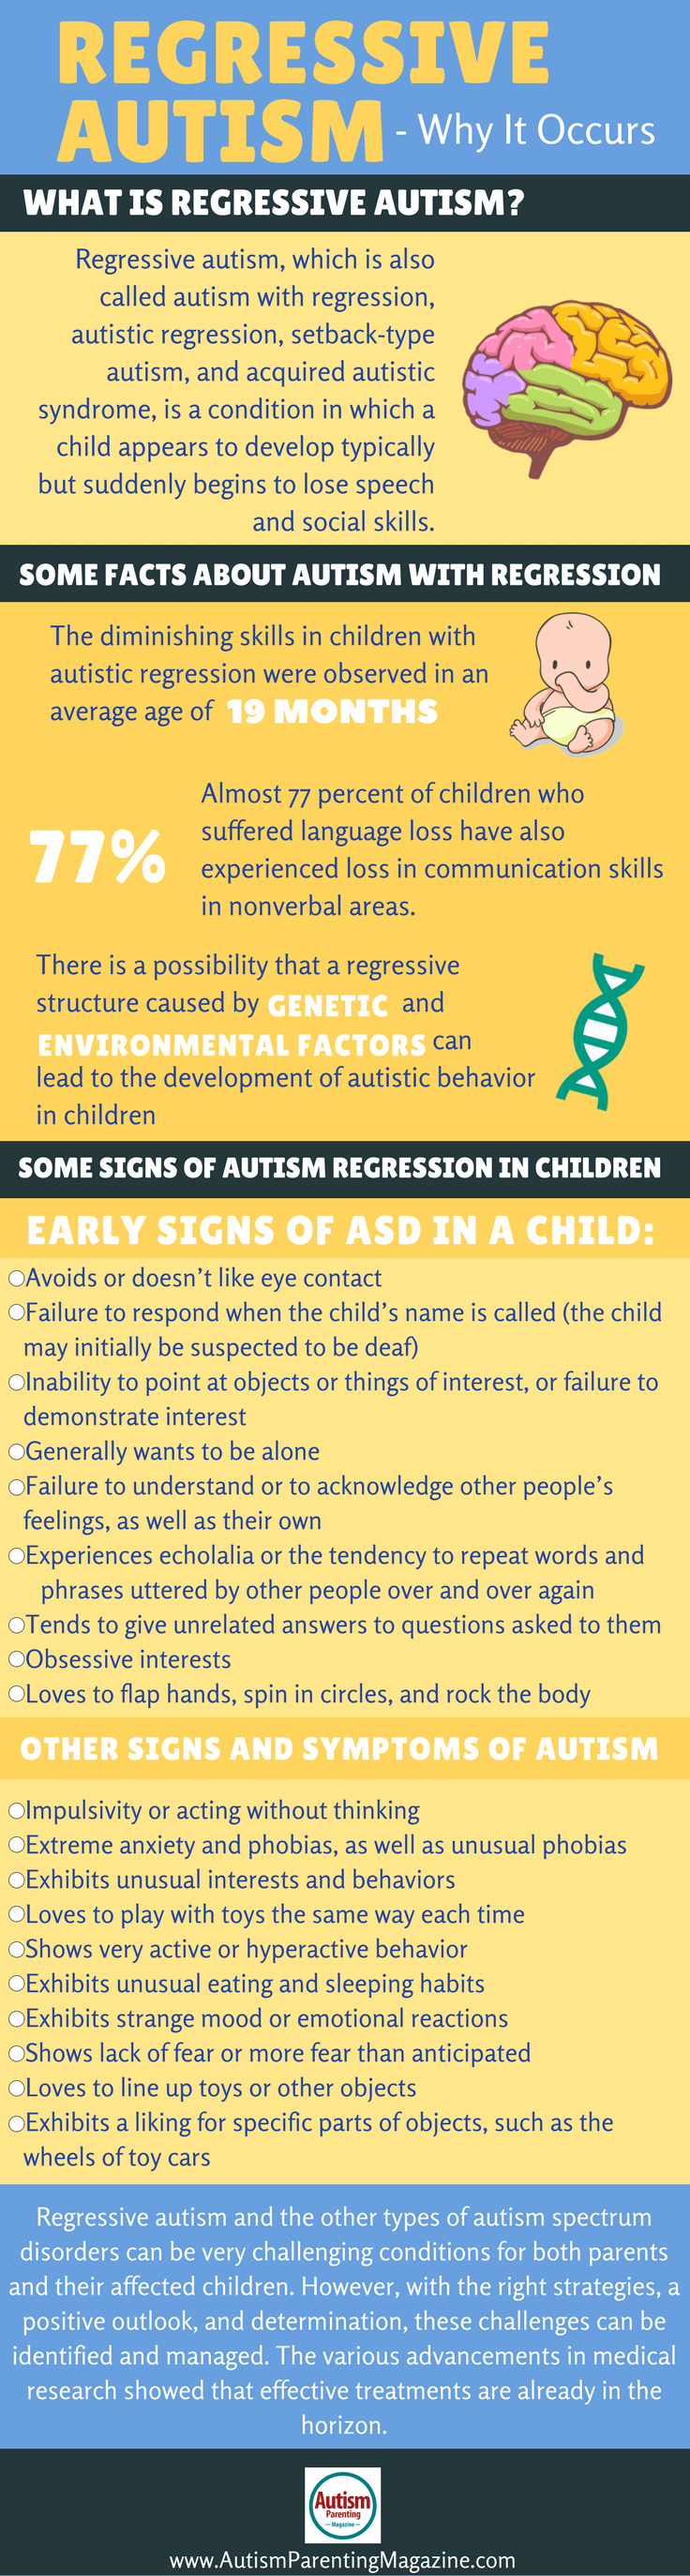 Download our Free Guide - What is Regressive Autism? https://www.autismparentingmagazine.com/what-is-regressive-autism